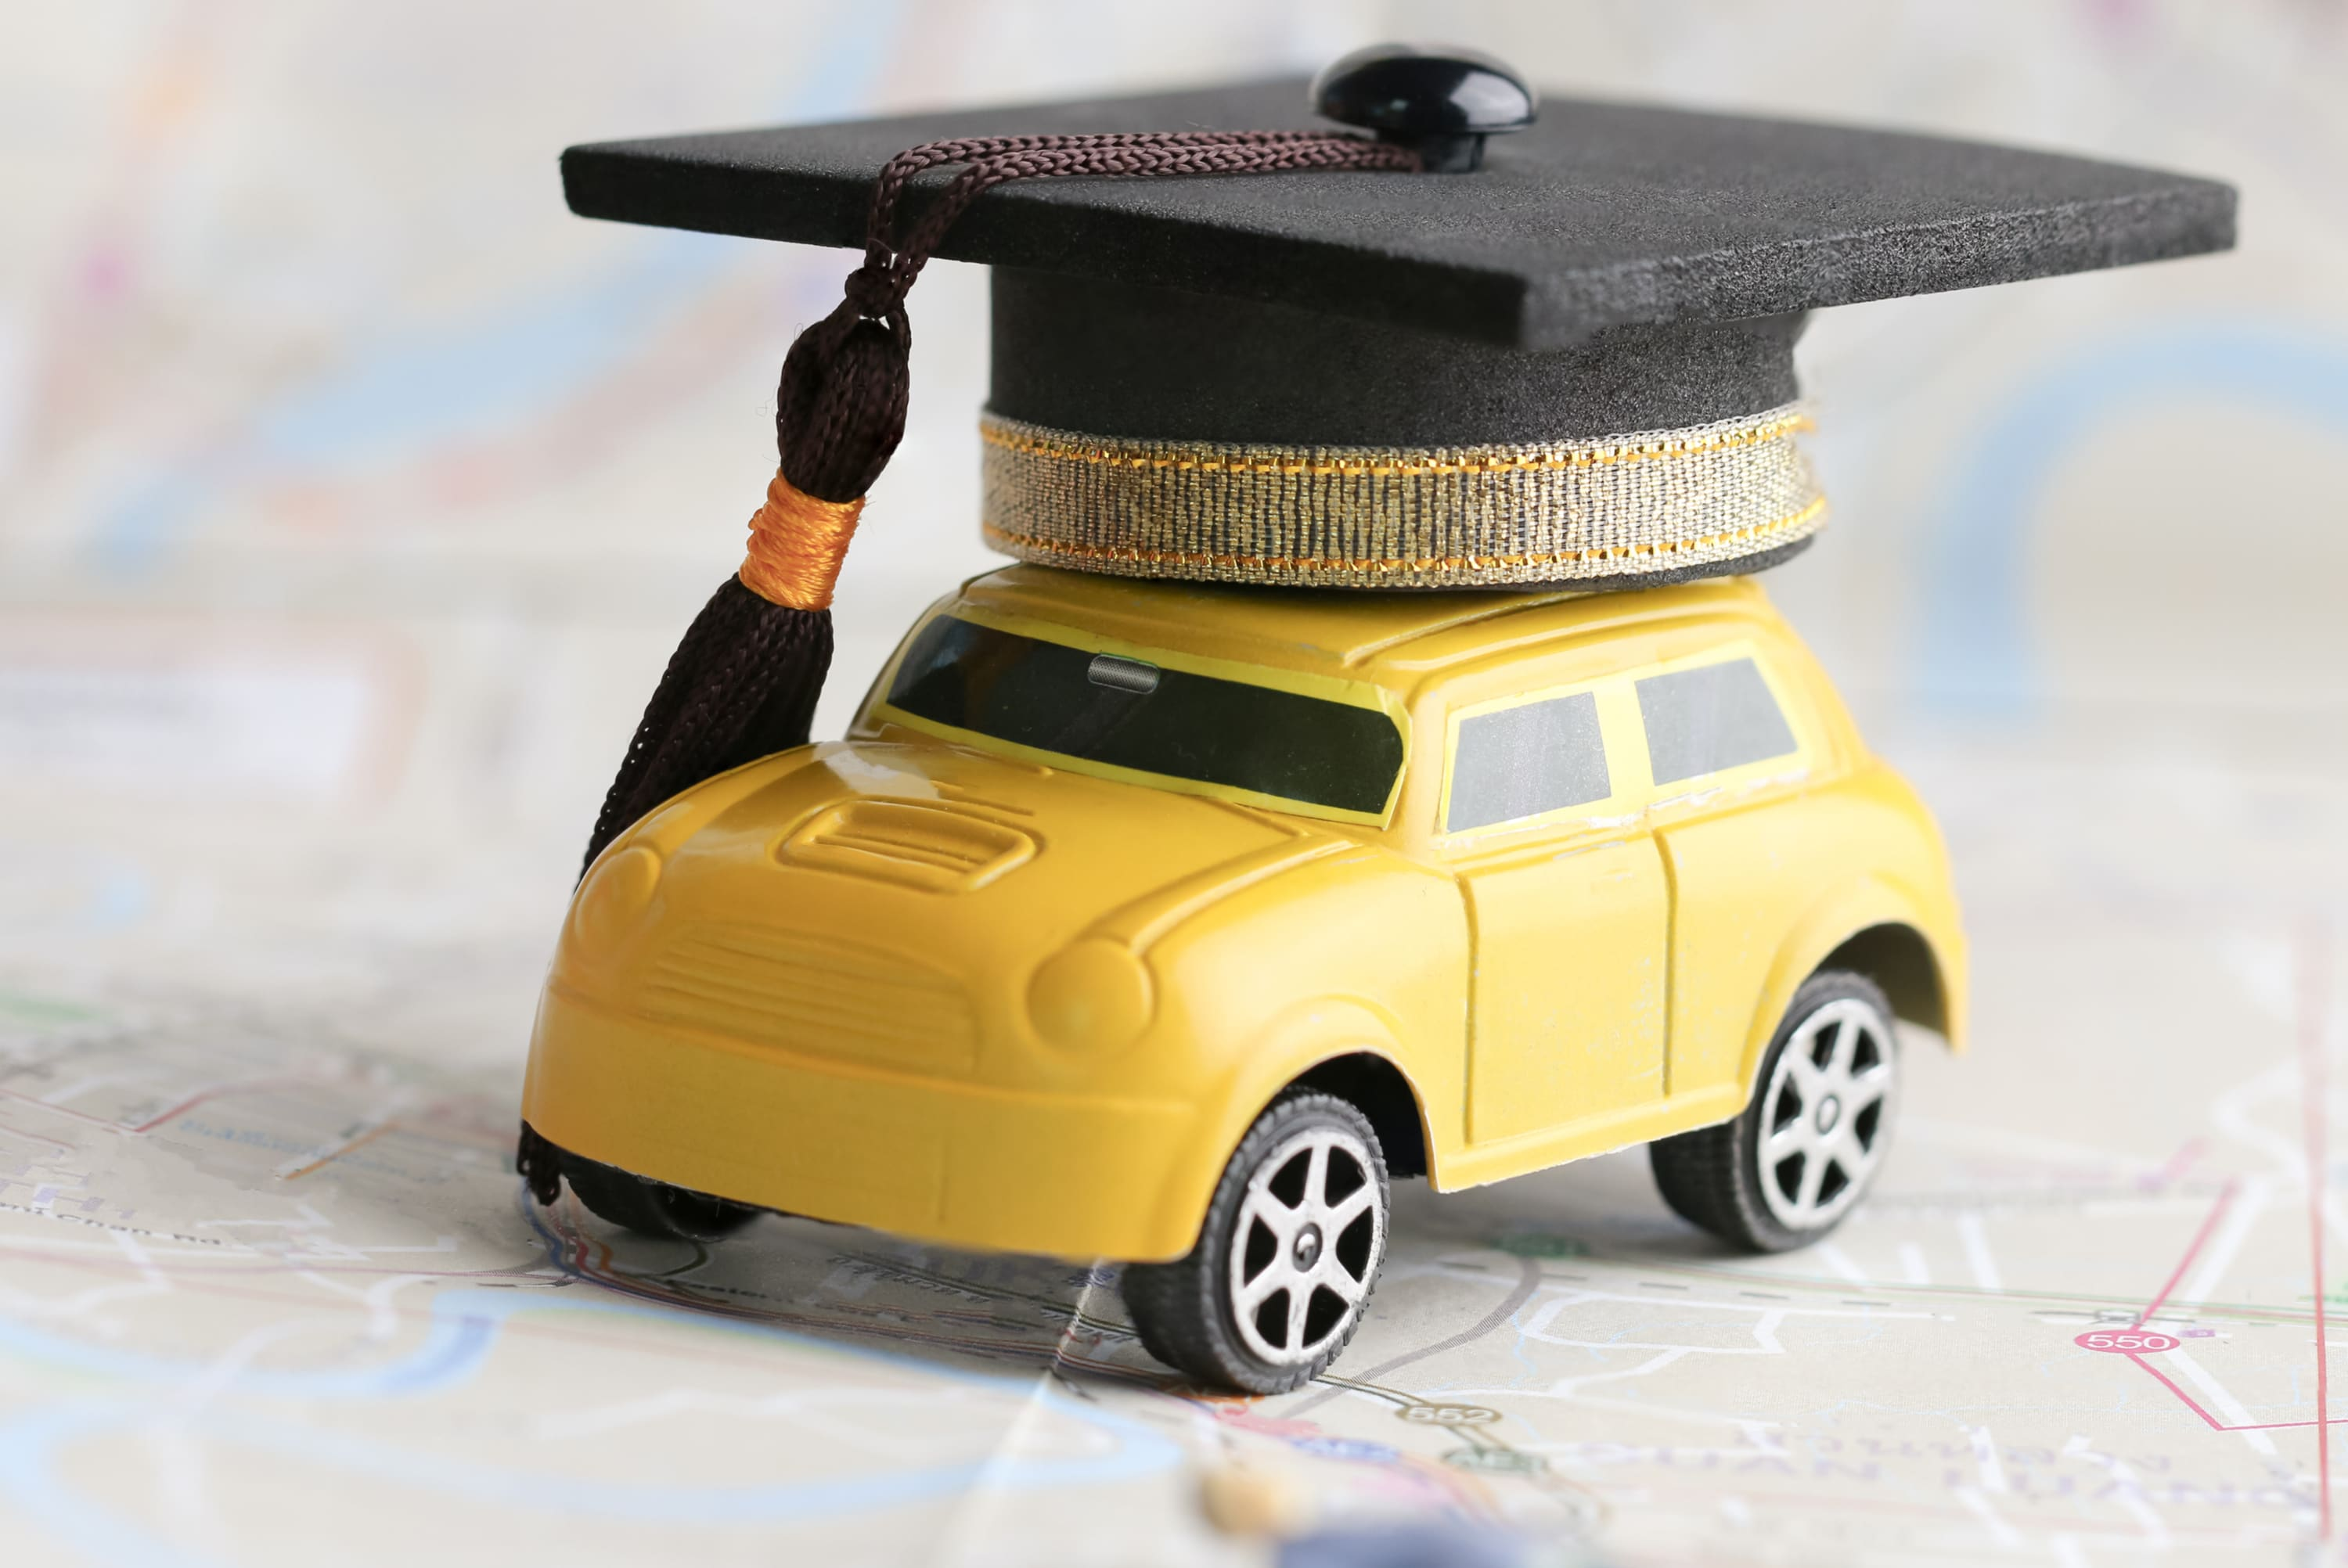 Best Car For College Student 2019 8 Best Affordable Cars for College Students